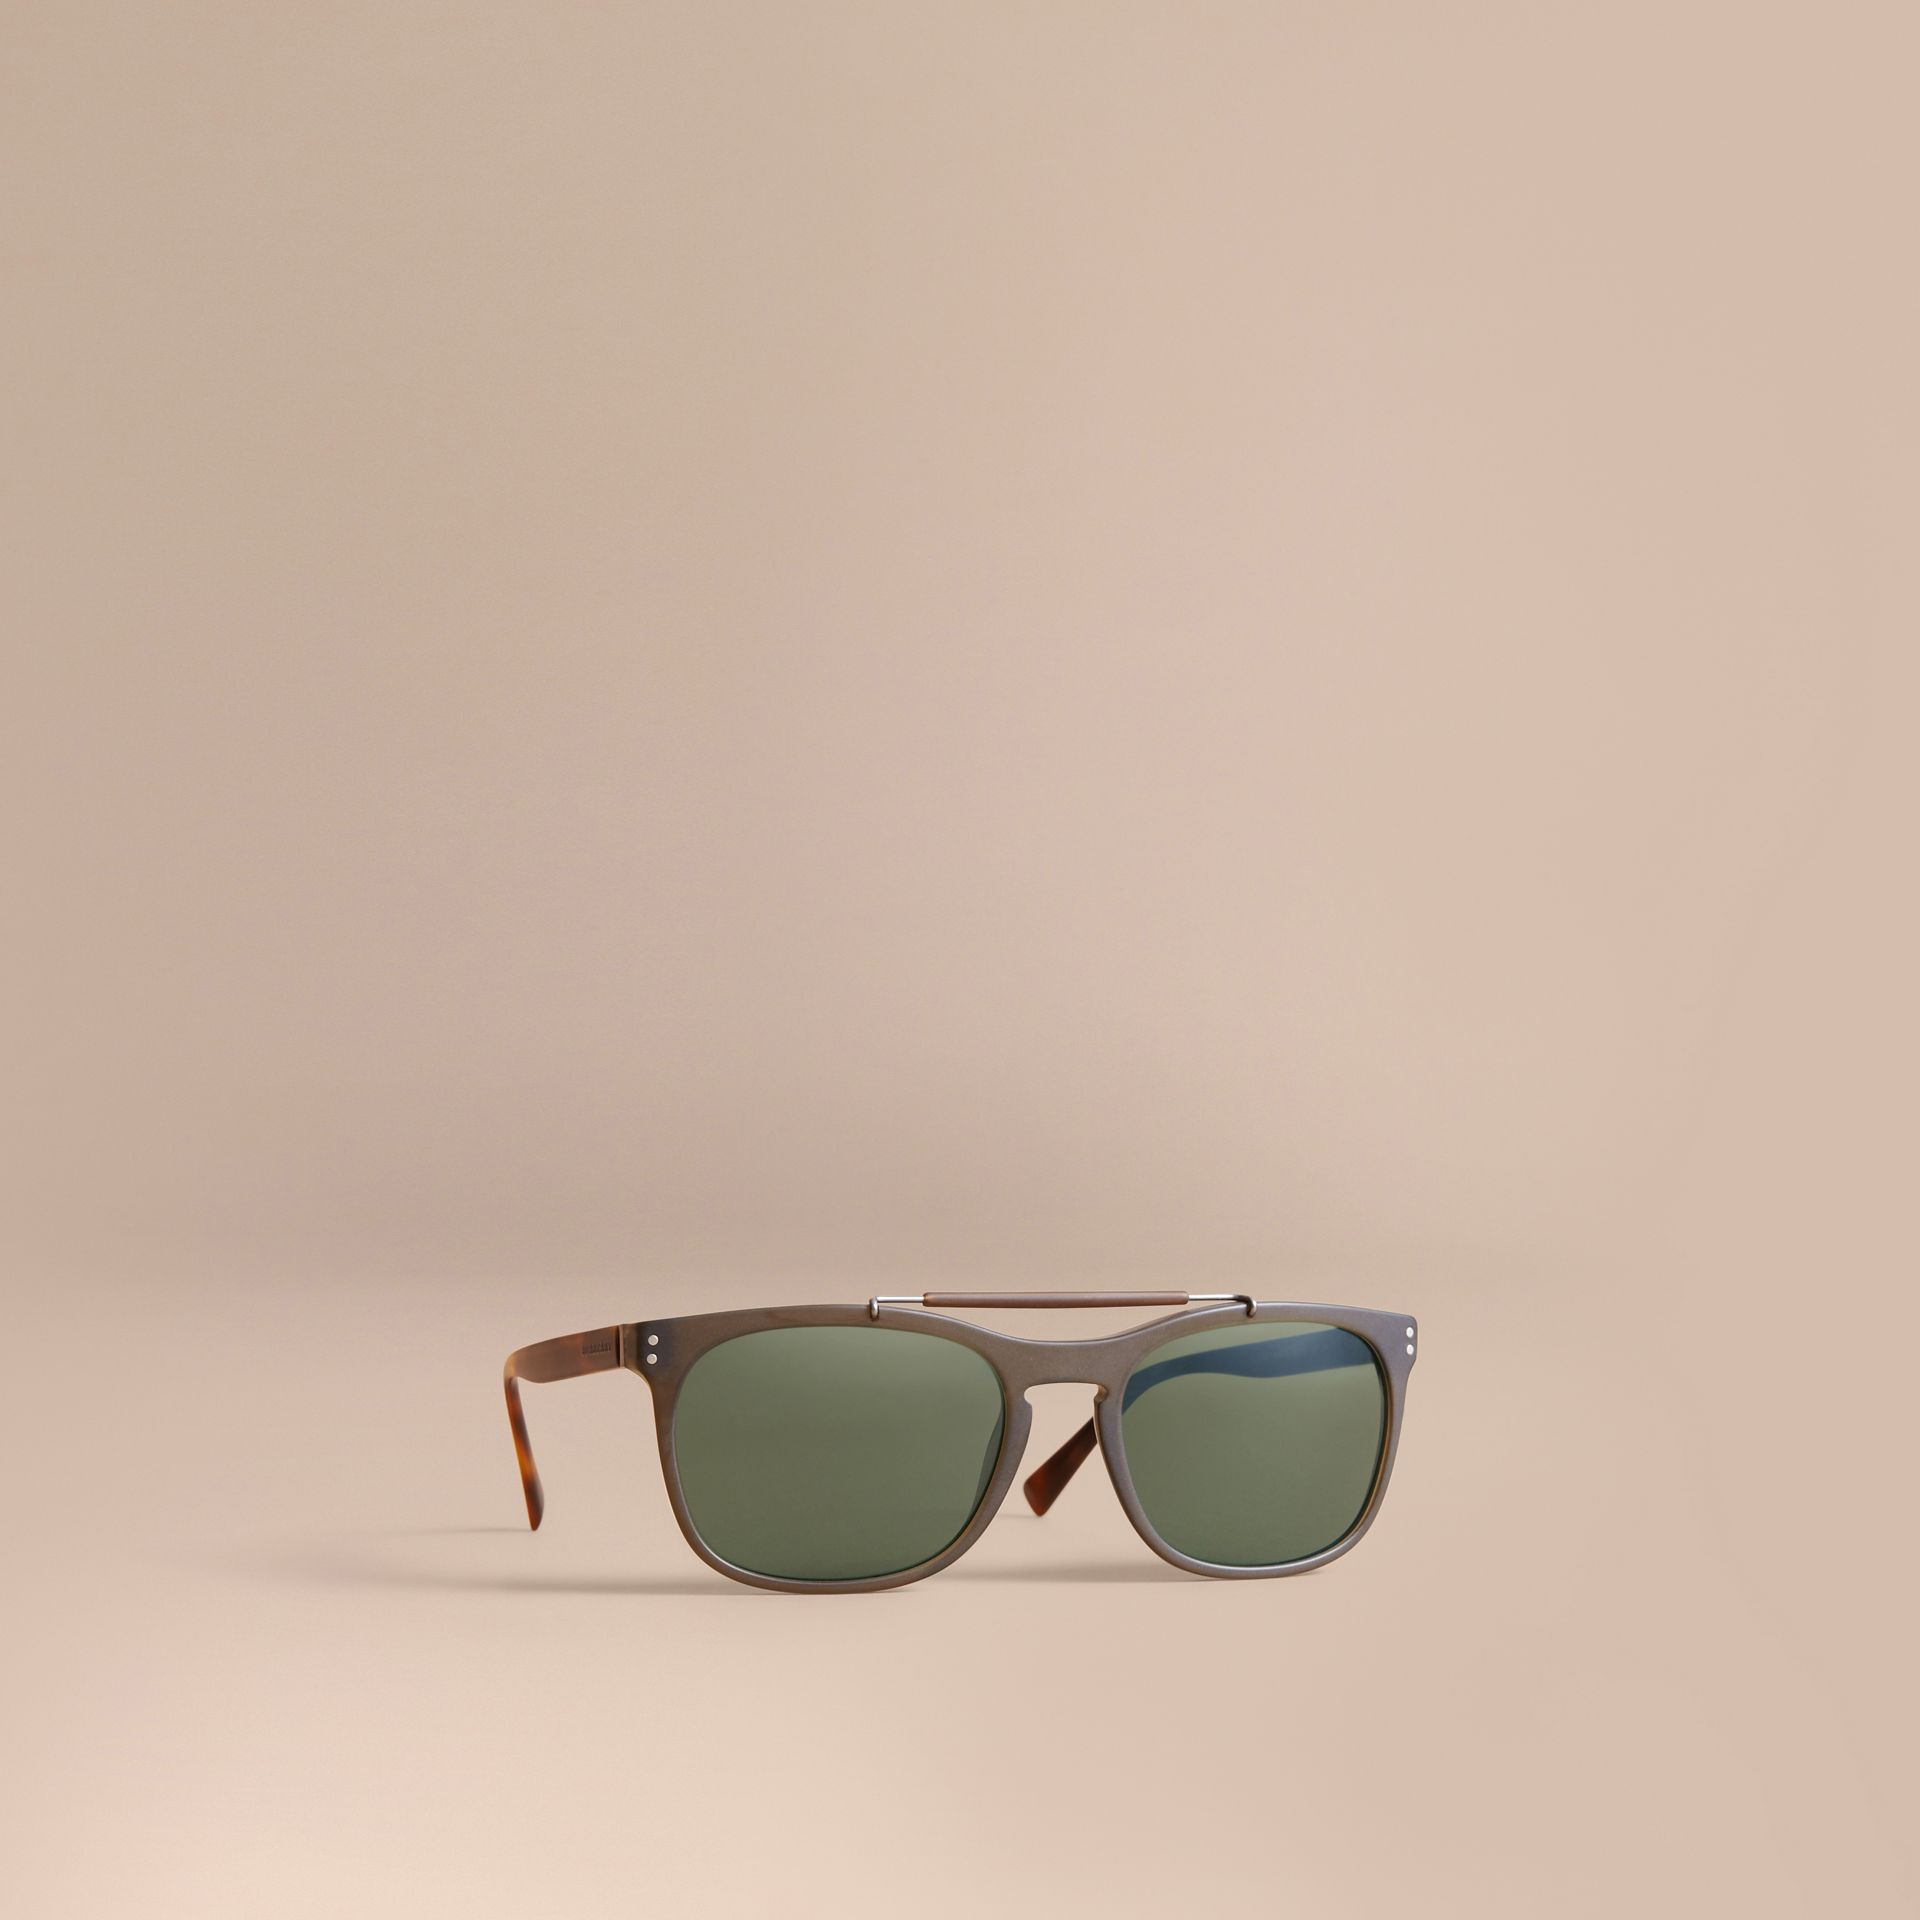 Top Bar Square Frame Sunglasses in Olive - Men | Burberry - gallery image 1